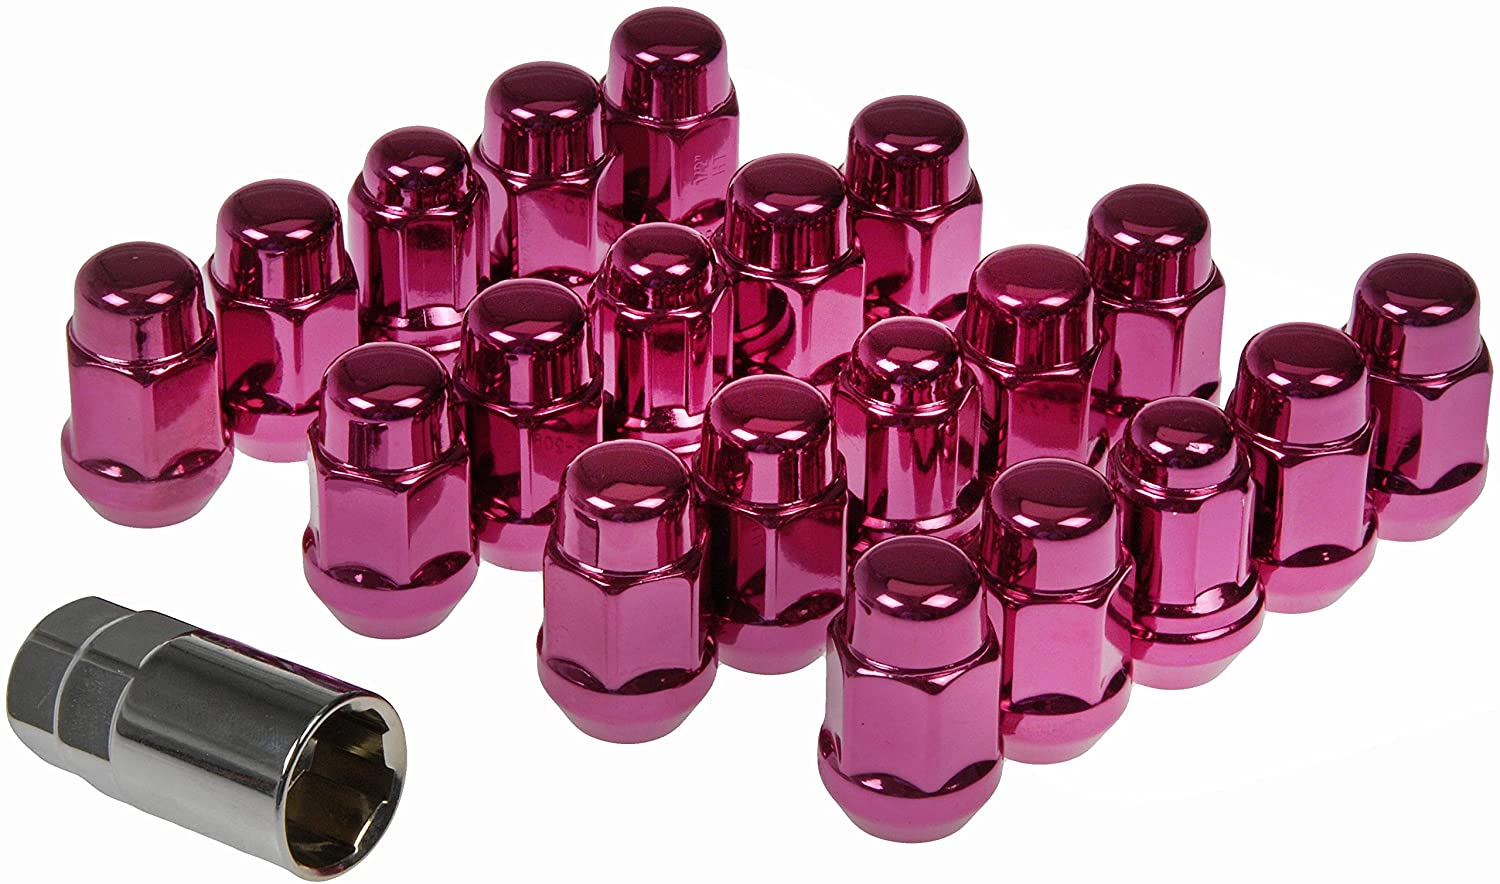 Dorman 711-335L Pack of 16 Pink Wheel Nuts and 4 Lock Nuts with Key